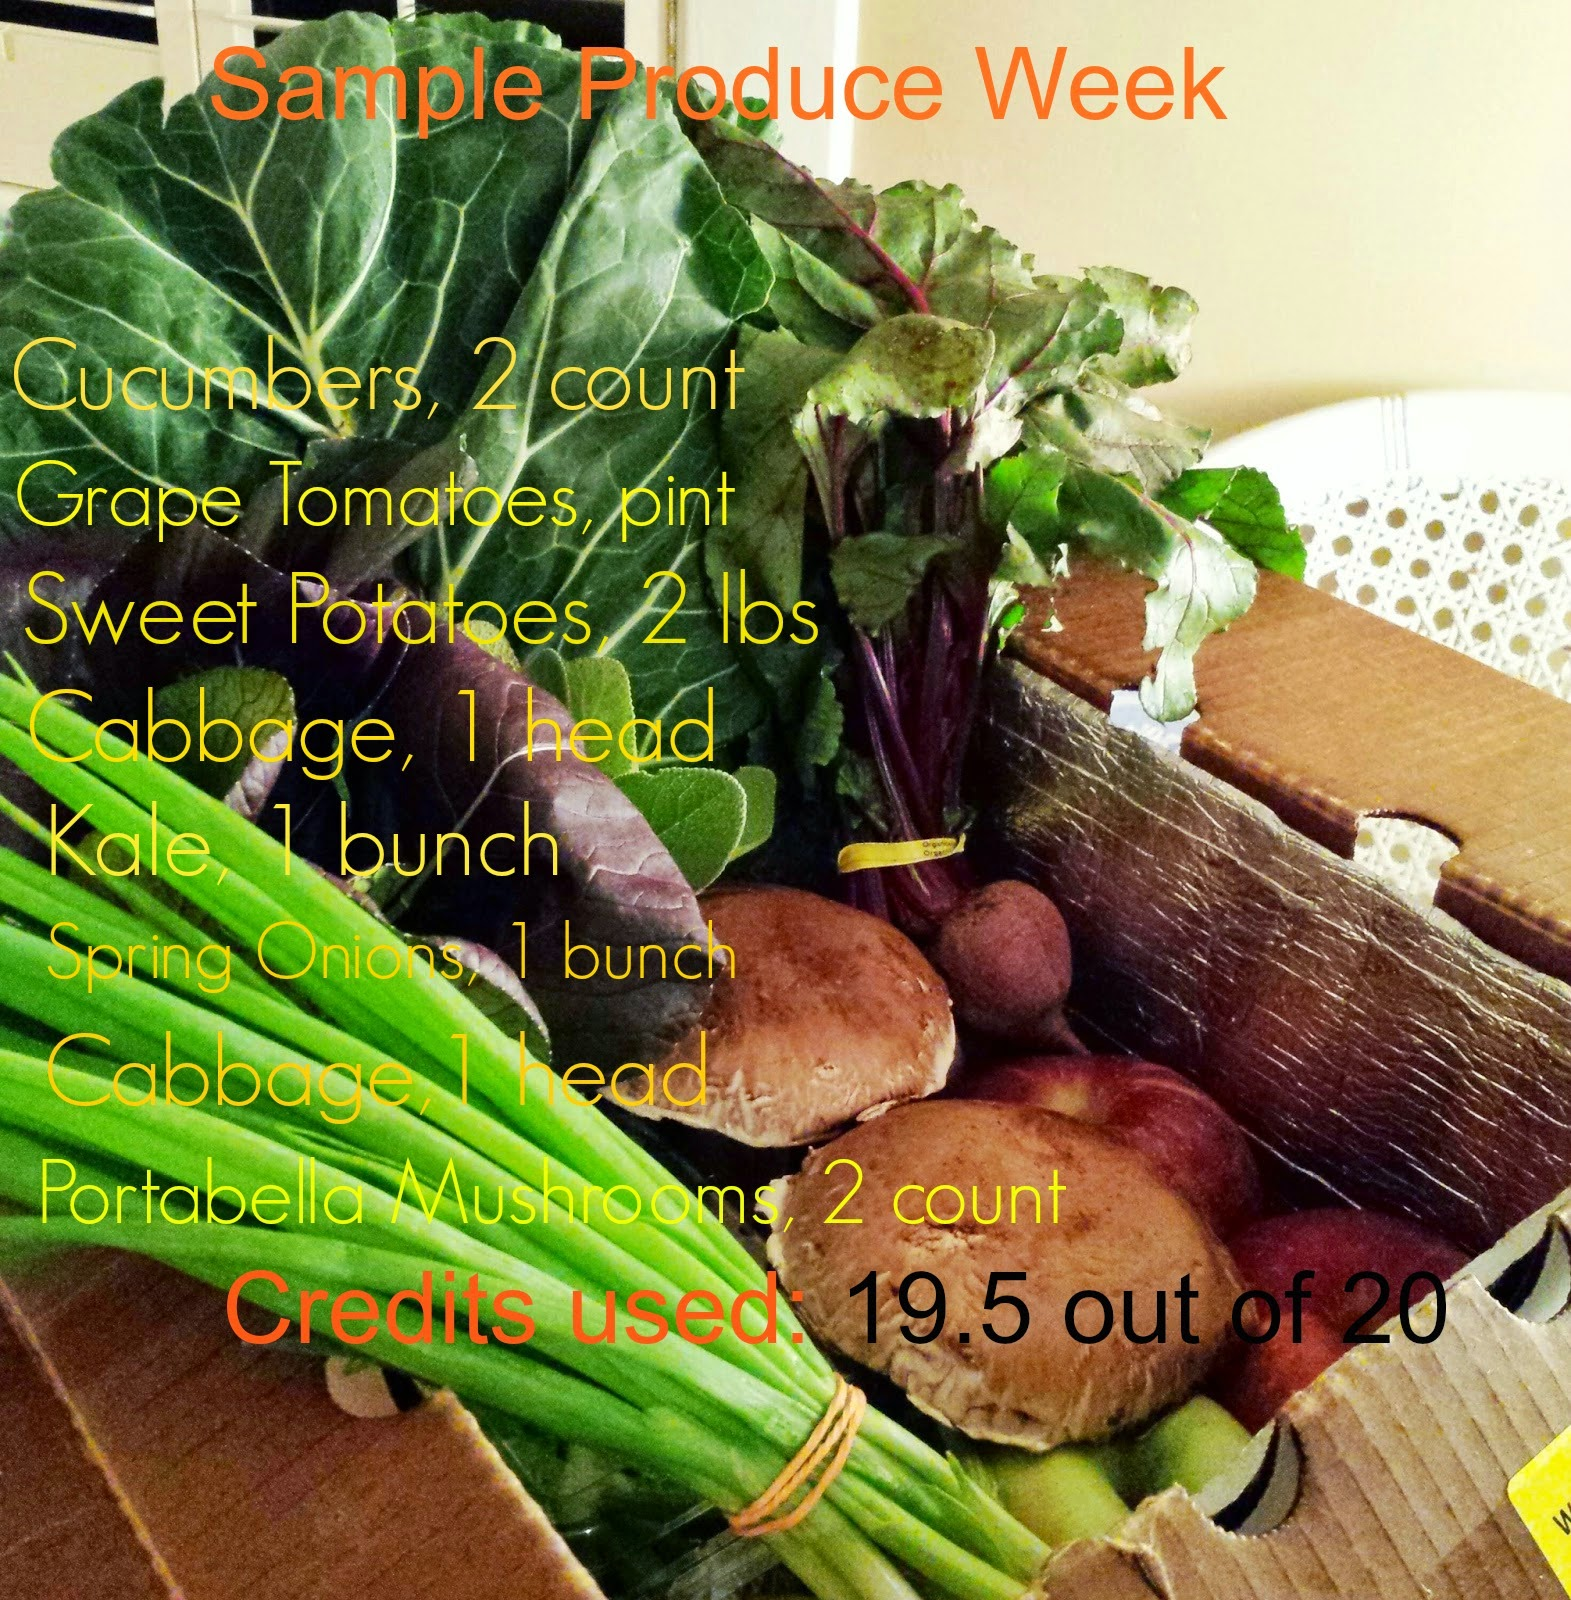 Papa Spud's Produce Delivery; sample of cost. Farm-Fresh veggies delivered to your doorstep weekly.